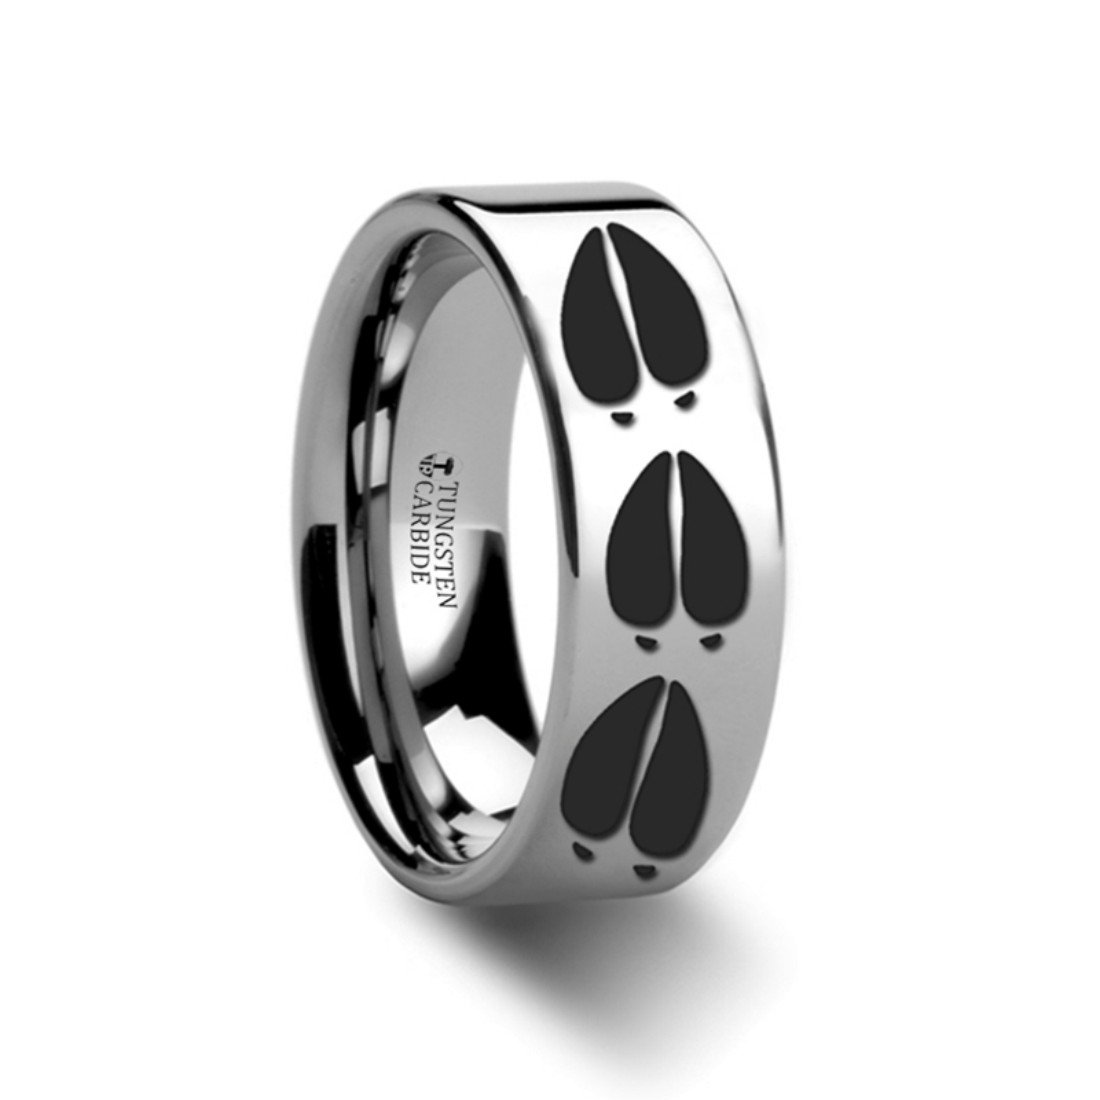 Thorsten Deer Track Animal Tracks Deer Buck Hoof Print Ring Flat Polished Tungsten Ring 8mm Wide Wedding Band from Roy Rose Jewelry